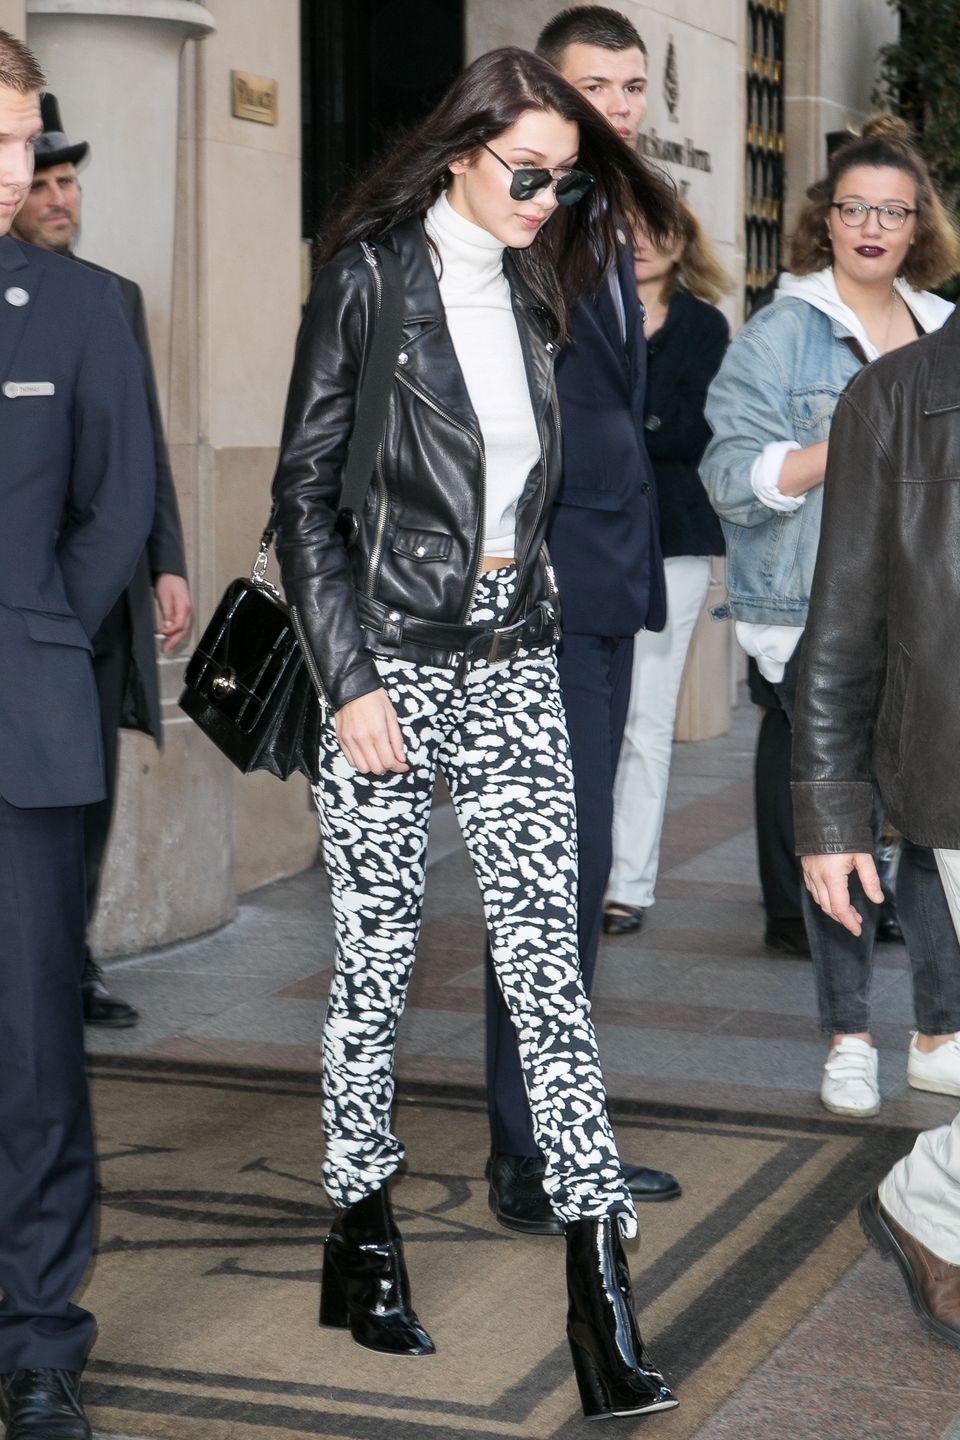 <p>In black and white printed leggings, a white turtleneck, black leather motorcycle jacket, patent leather booties, reflective sunglasses and a structured black handbag while out in Paris. </p>